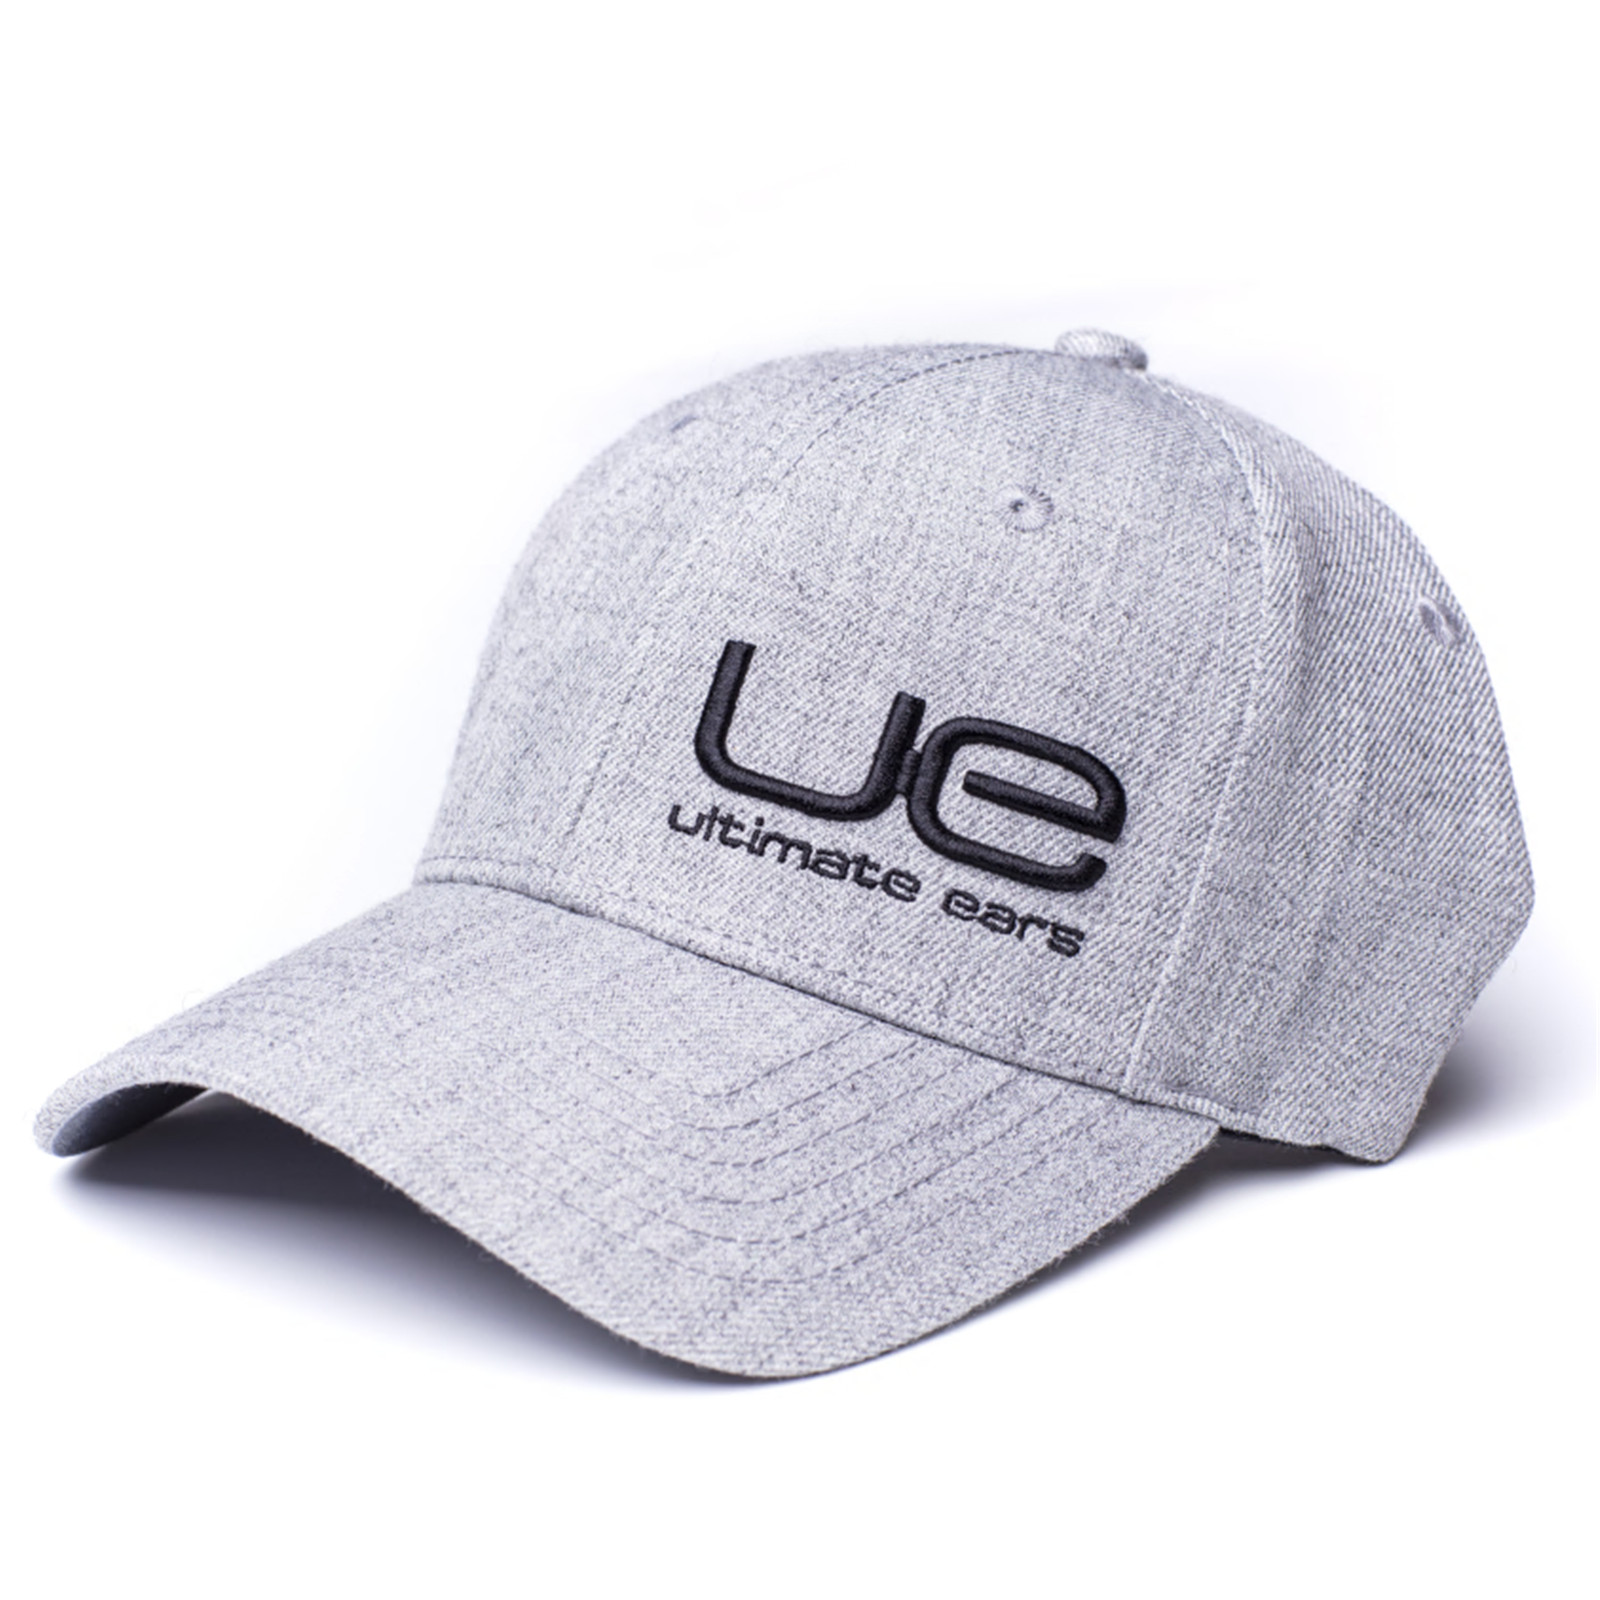 1b0db1afb58 Buy the Ultimate Ears UFLEX HEADWEAR CAP - SNAPBACK 6 CURVE PEAK ...